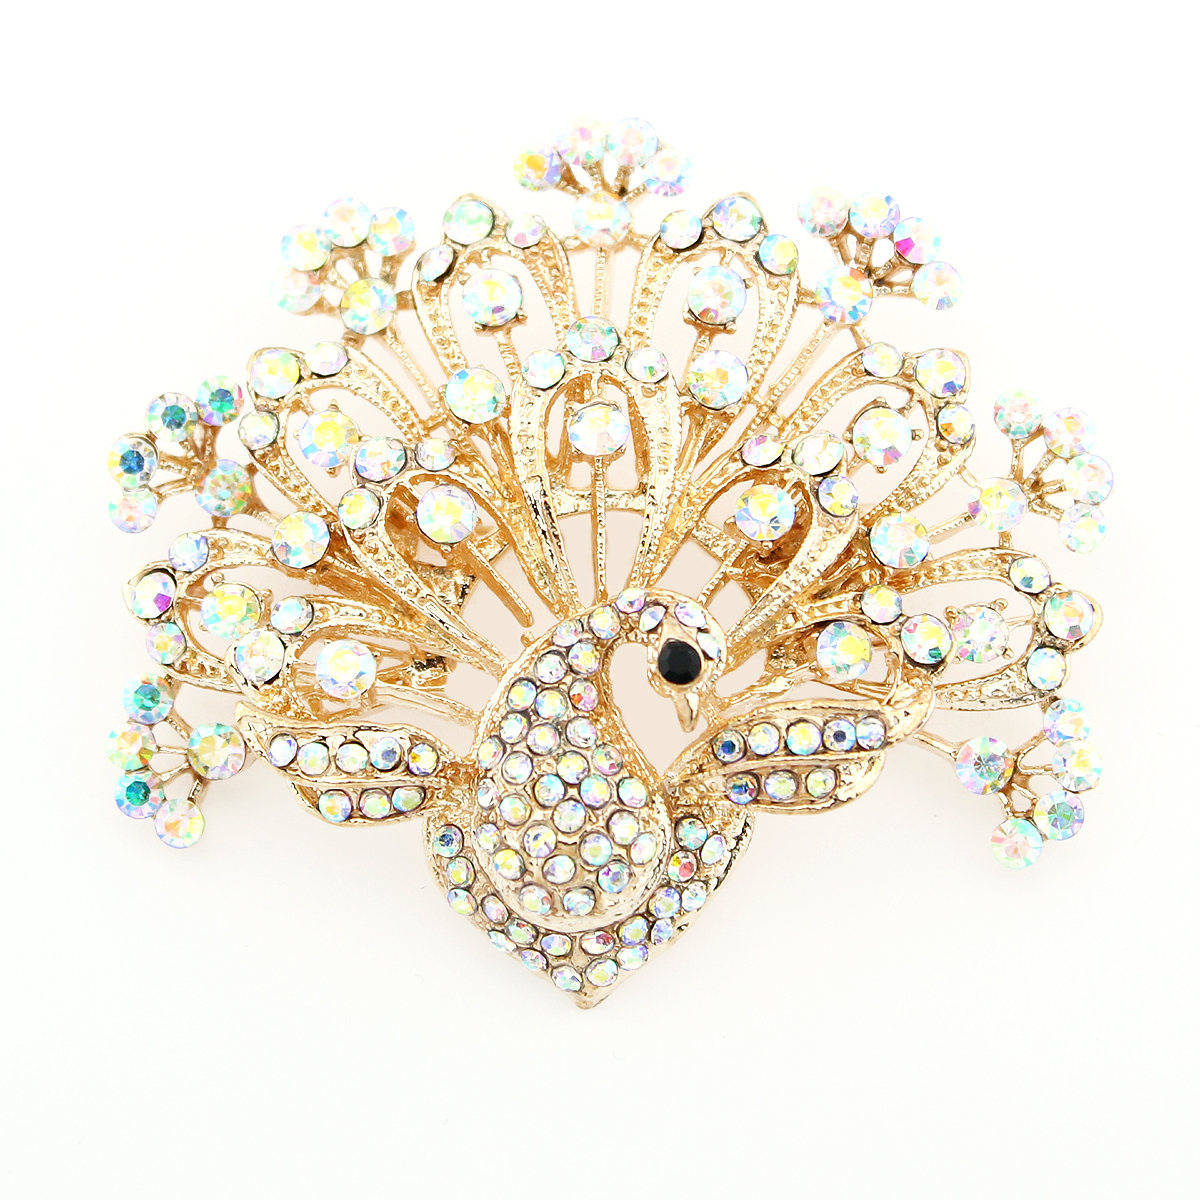 Primary image for Peacock Brooch, Iridescent Crystal Brooches Pins Women Fashion, Dress Sash Pin